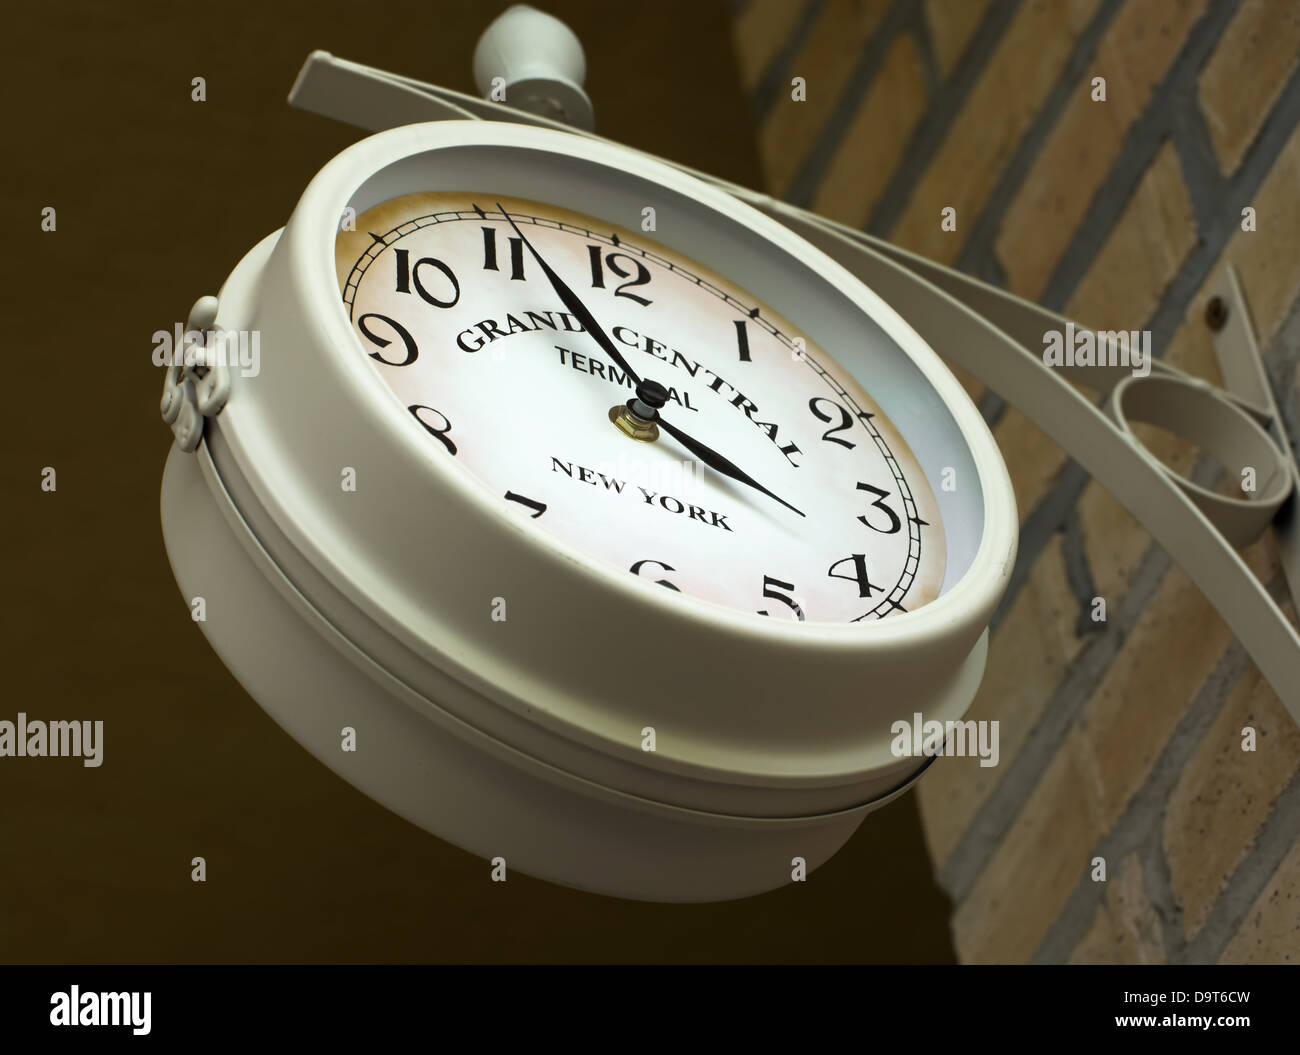 New York Klok Old Wall Clock On Grand Central Terminal In New York Stock Photo